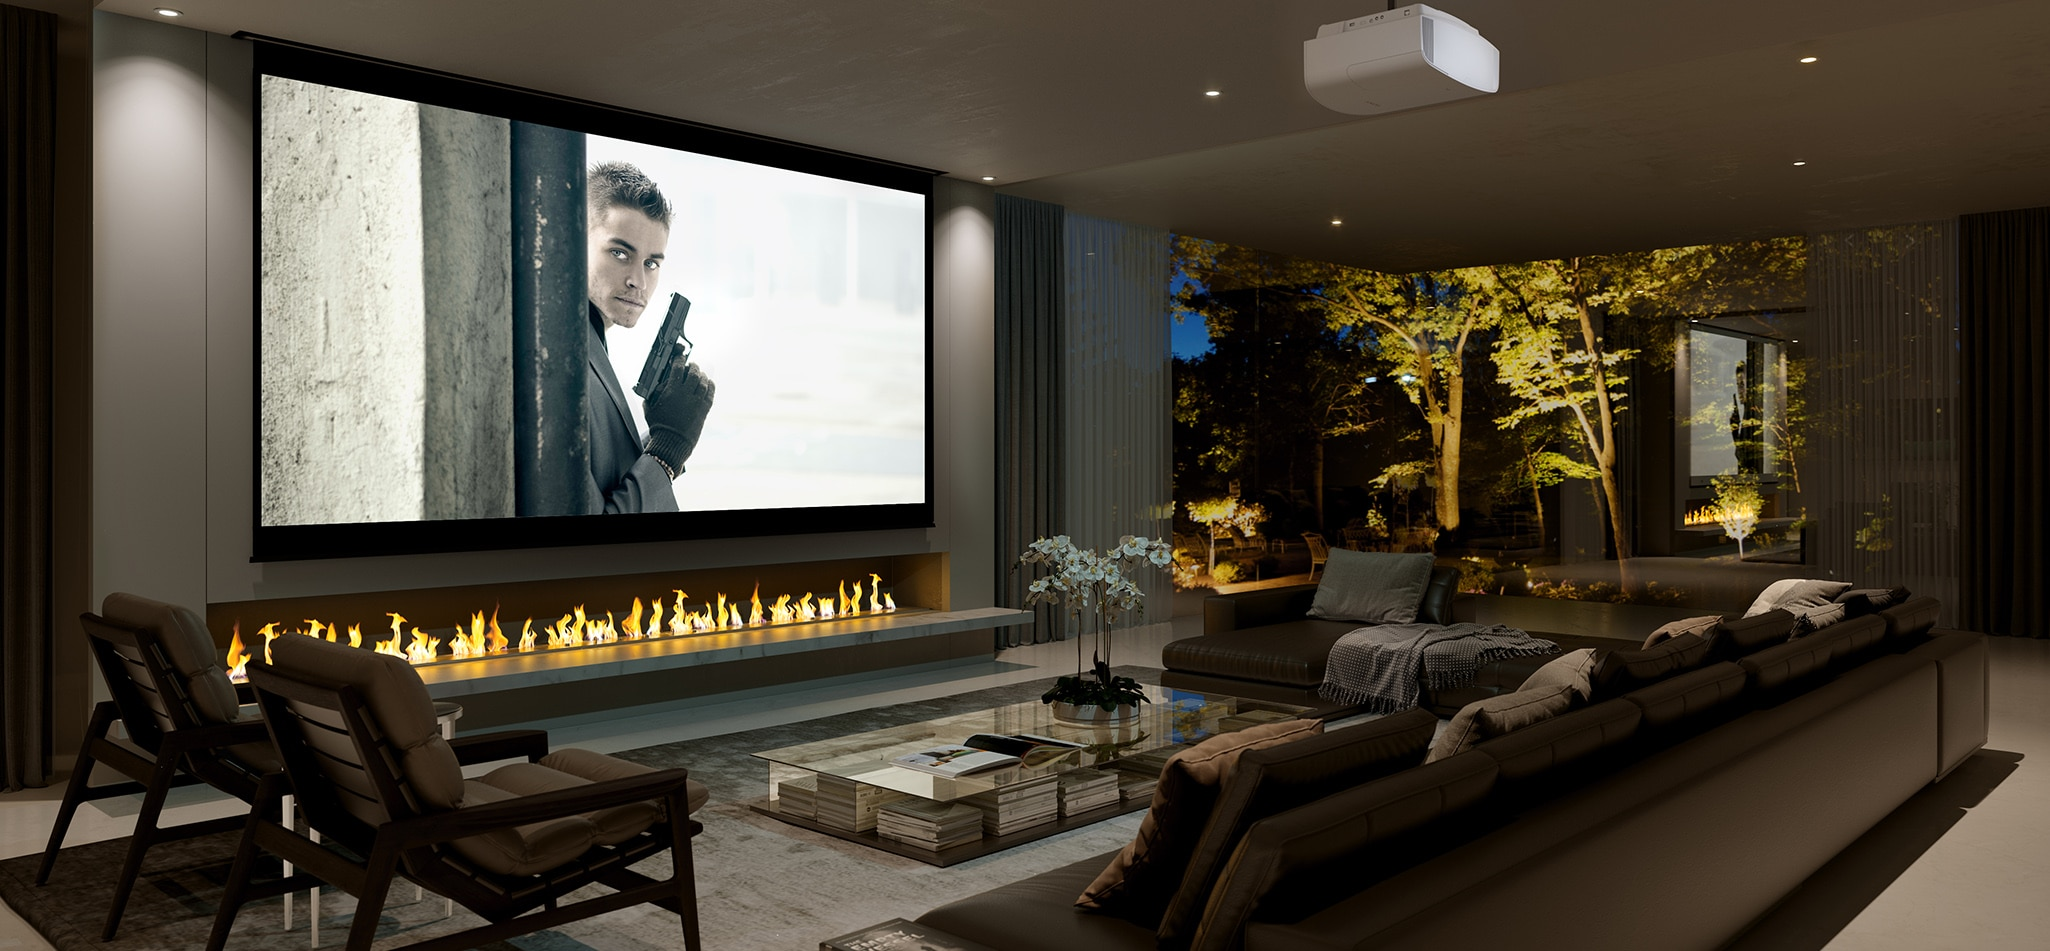 A premium home cinema room with a large sofa. The screen is showing movie content.